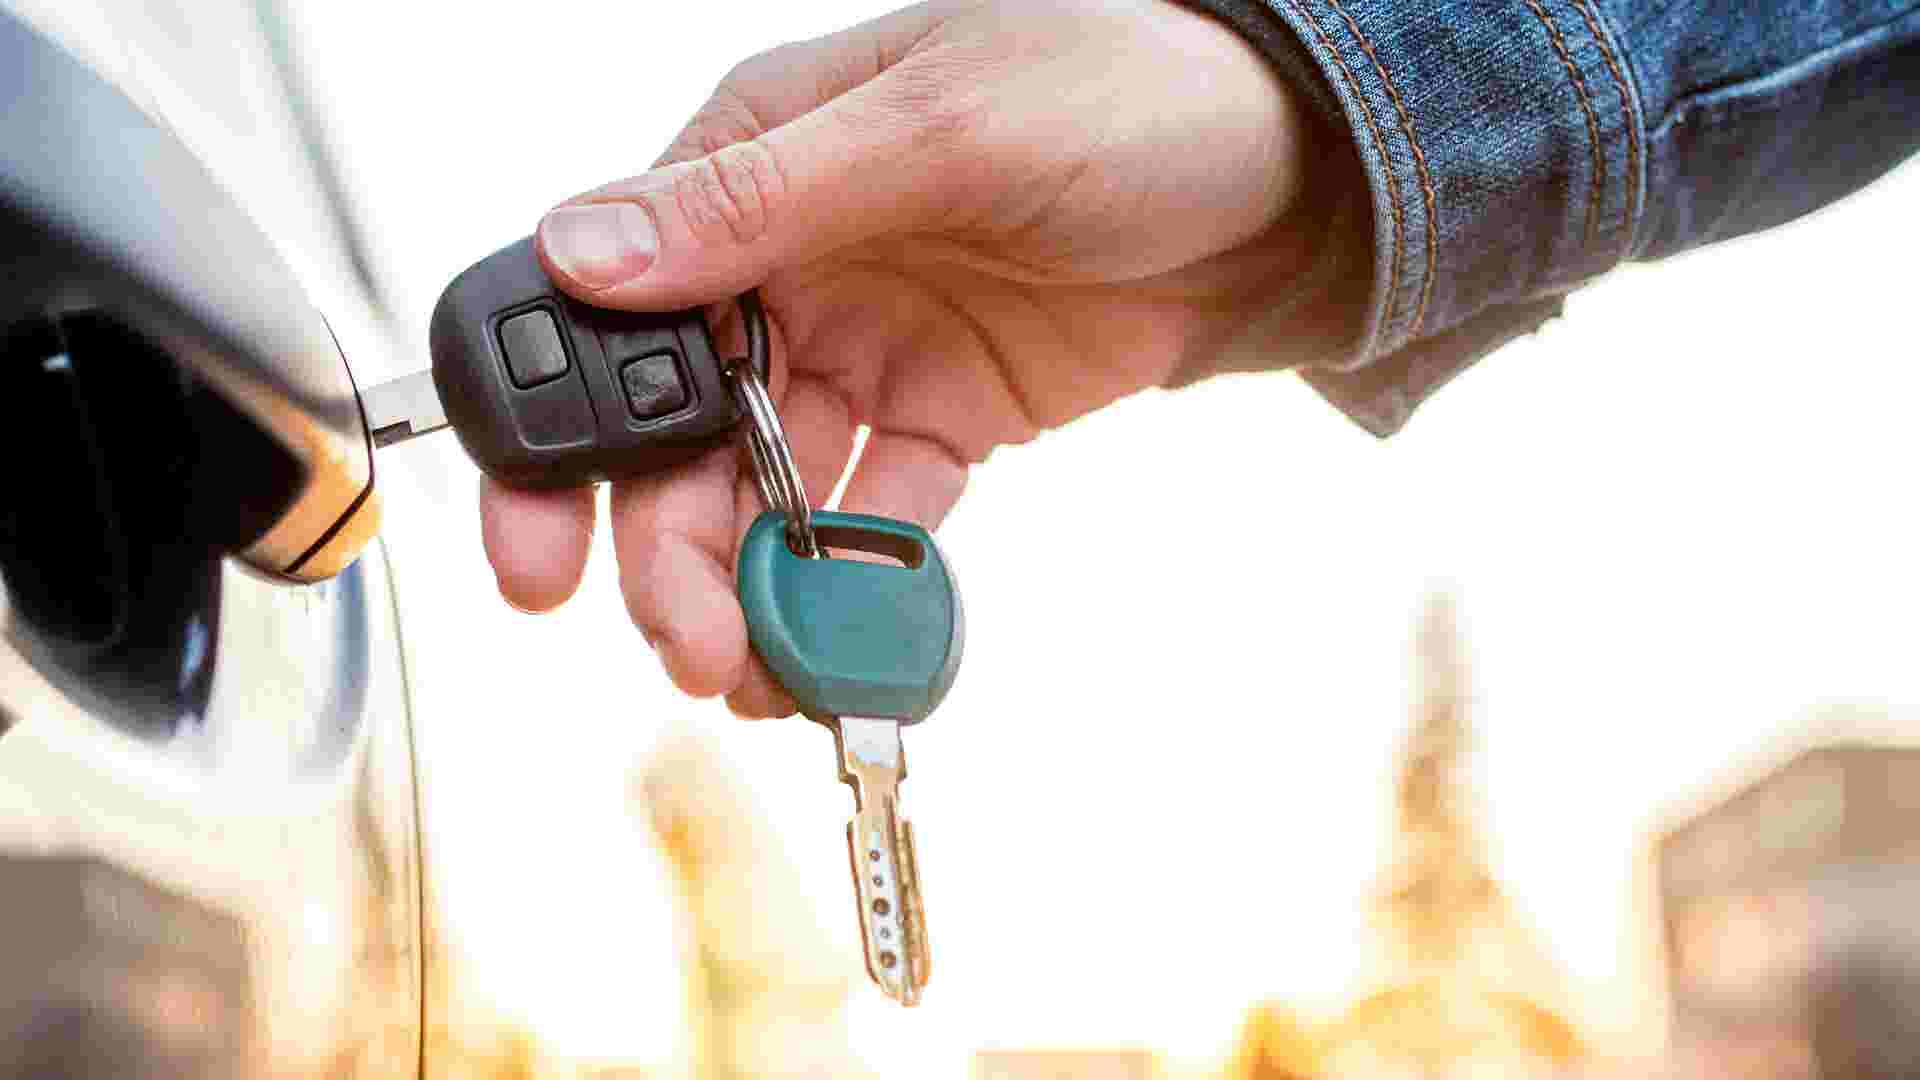 Wrap your key fob in tin foil to avoid theft